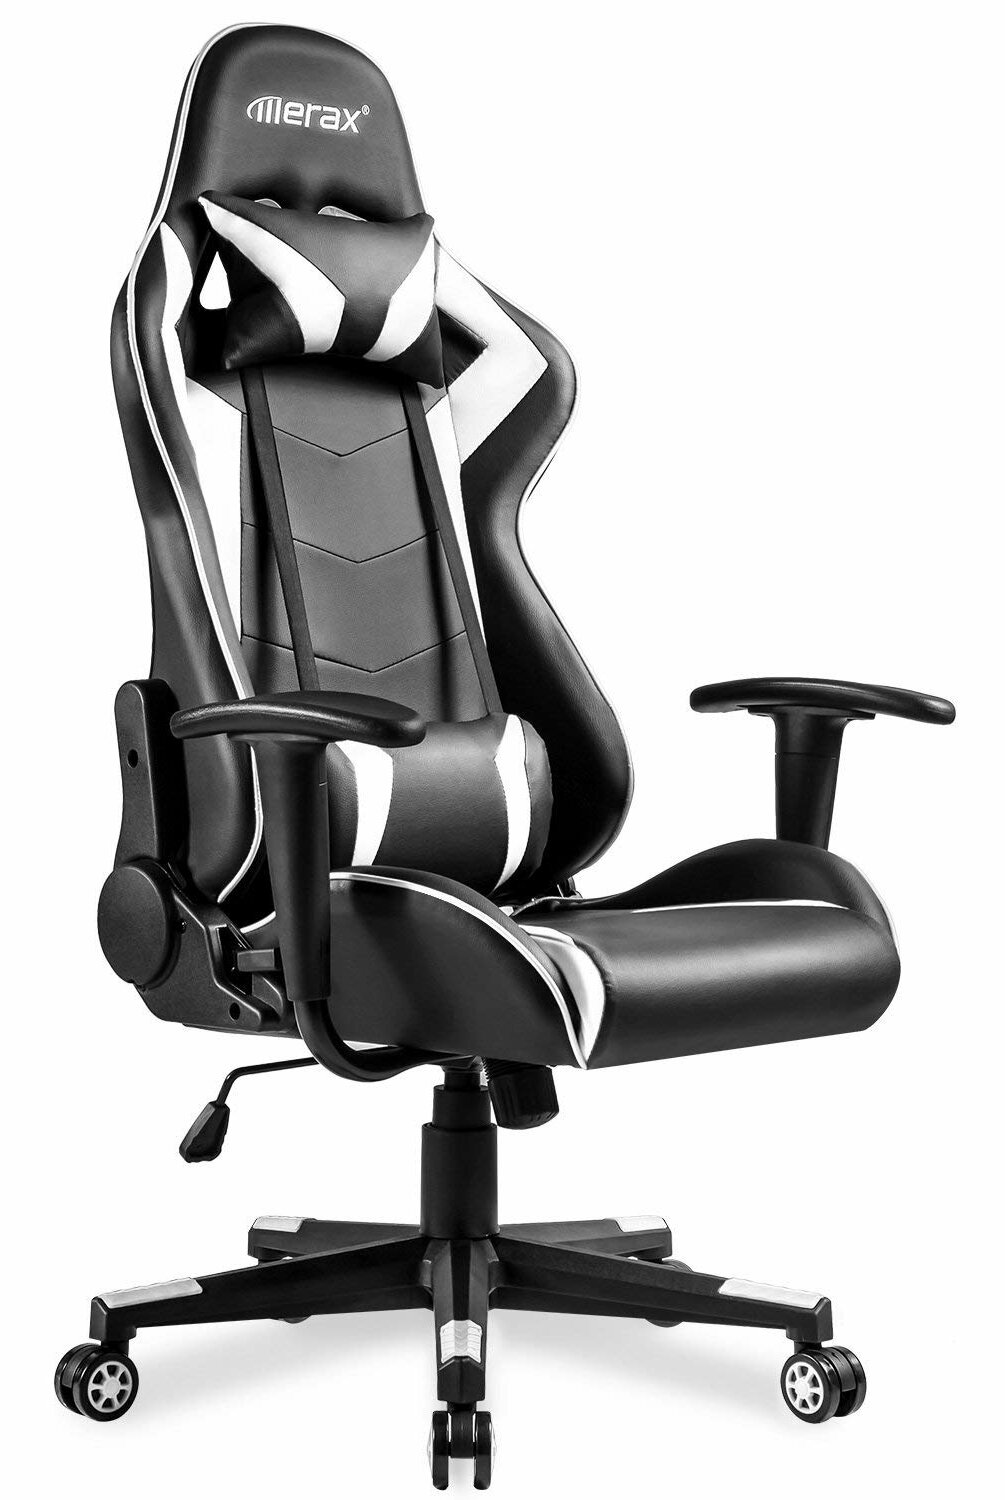 Gaming Gaming Gaming Chair Ergonomic Ergonomic Ergonomic Ergonomic Chair Chair Ergonomic Ergonomic Gaming Chair Chair Gaming 0OmwnyN8vP